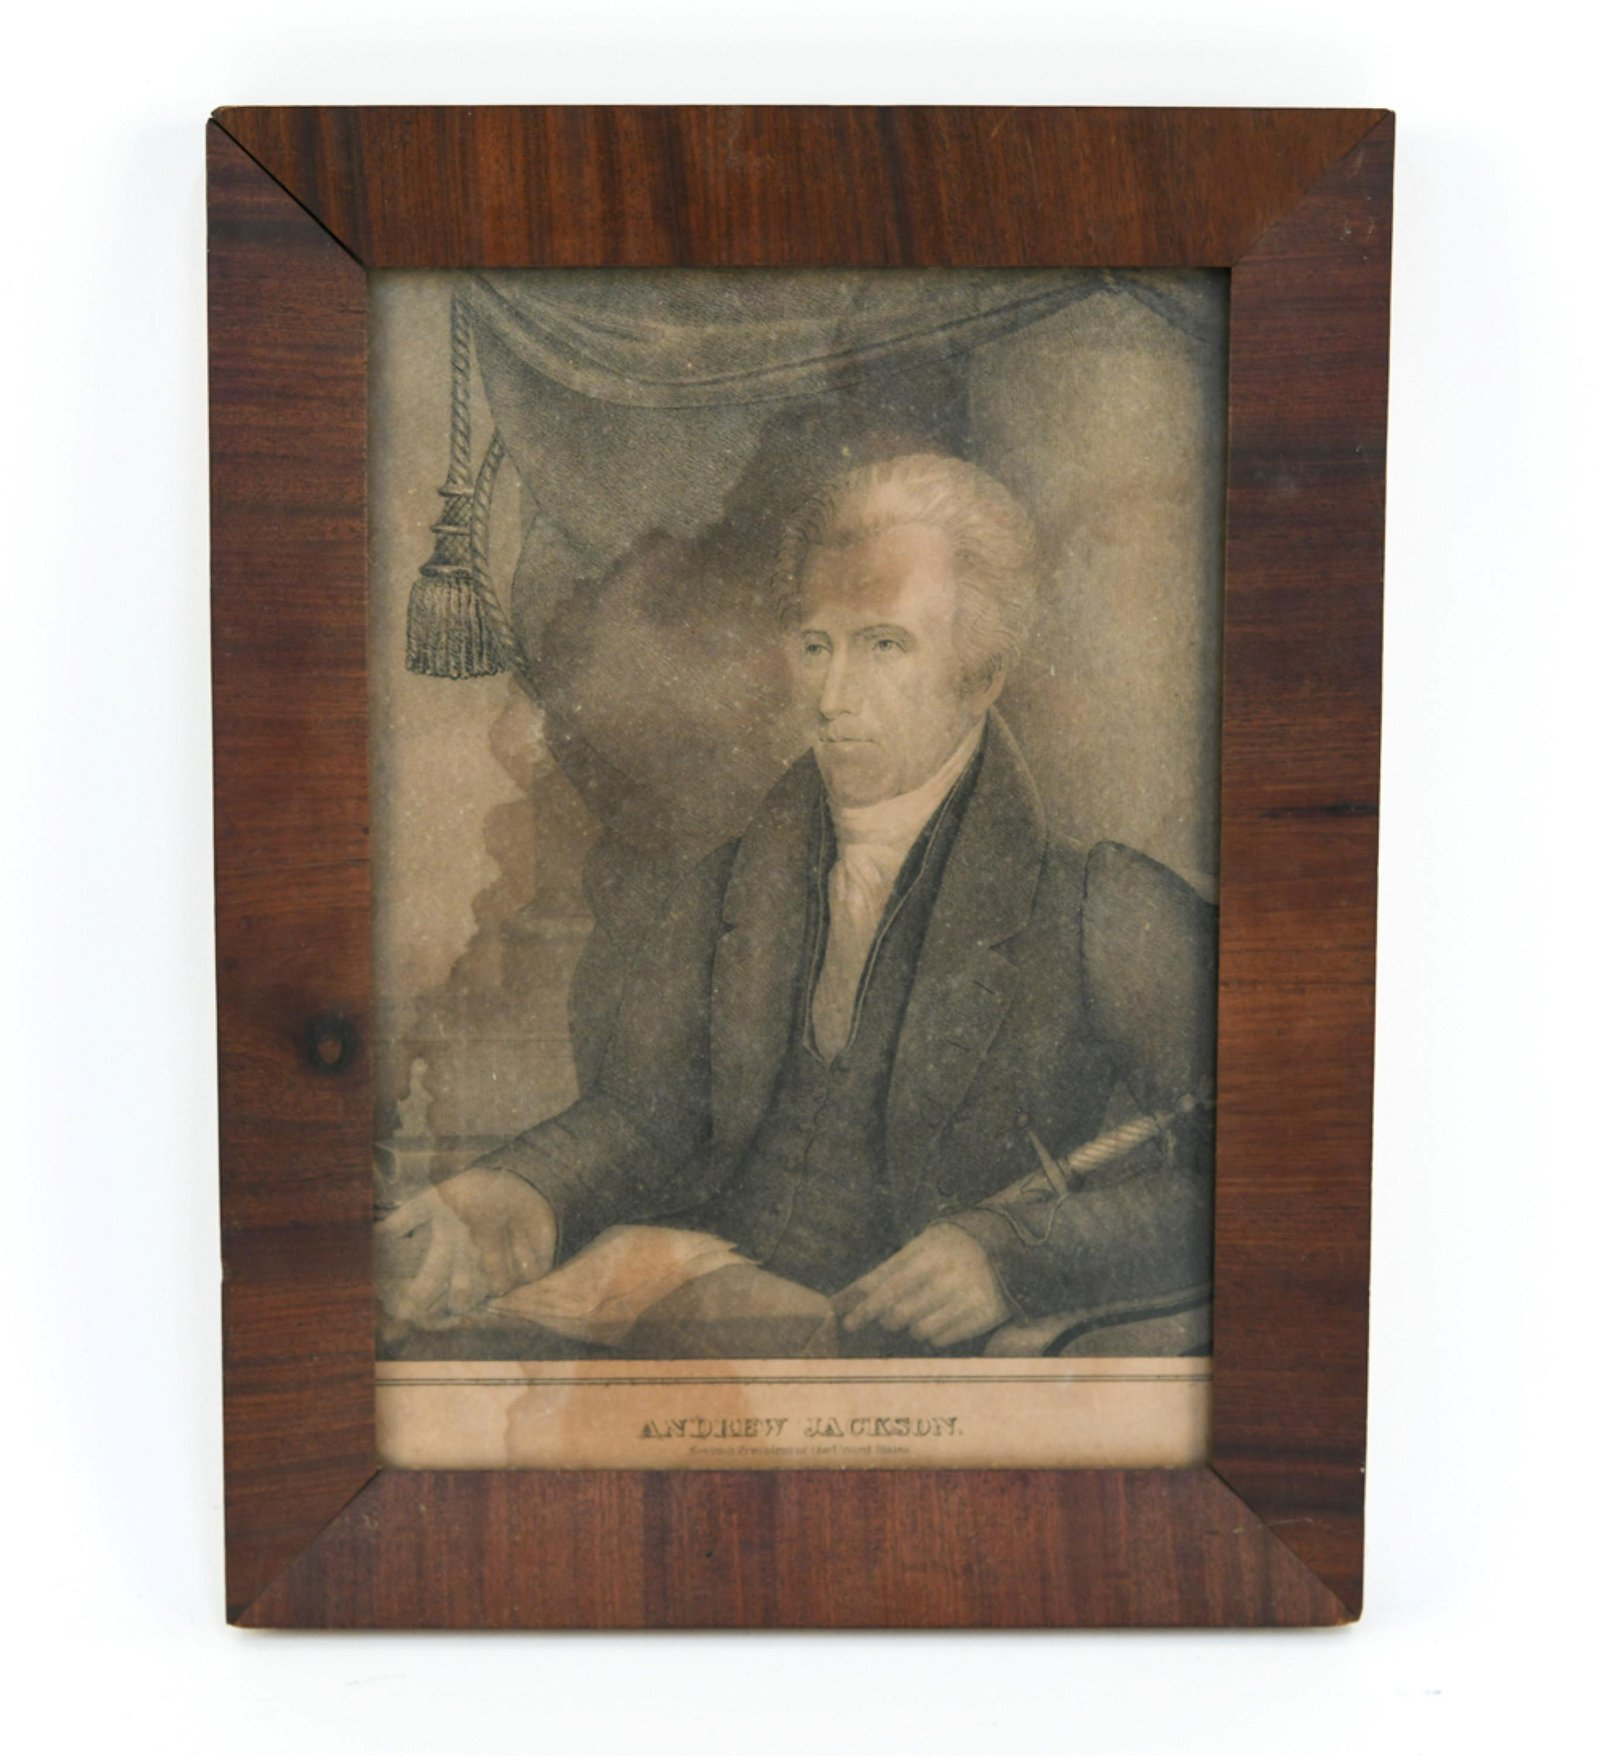 ANDREW JACKSON 19TH C. LITHOGRAPH